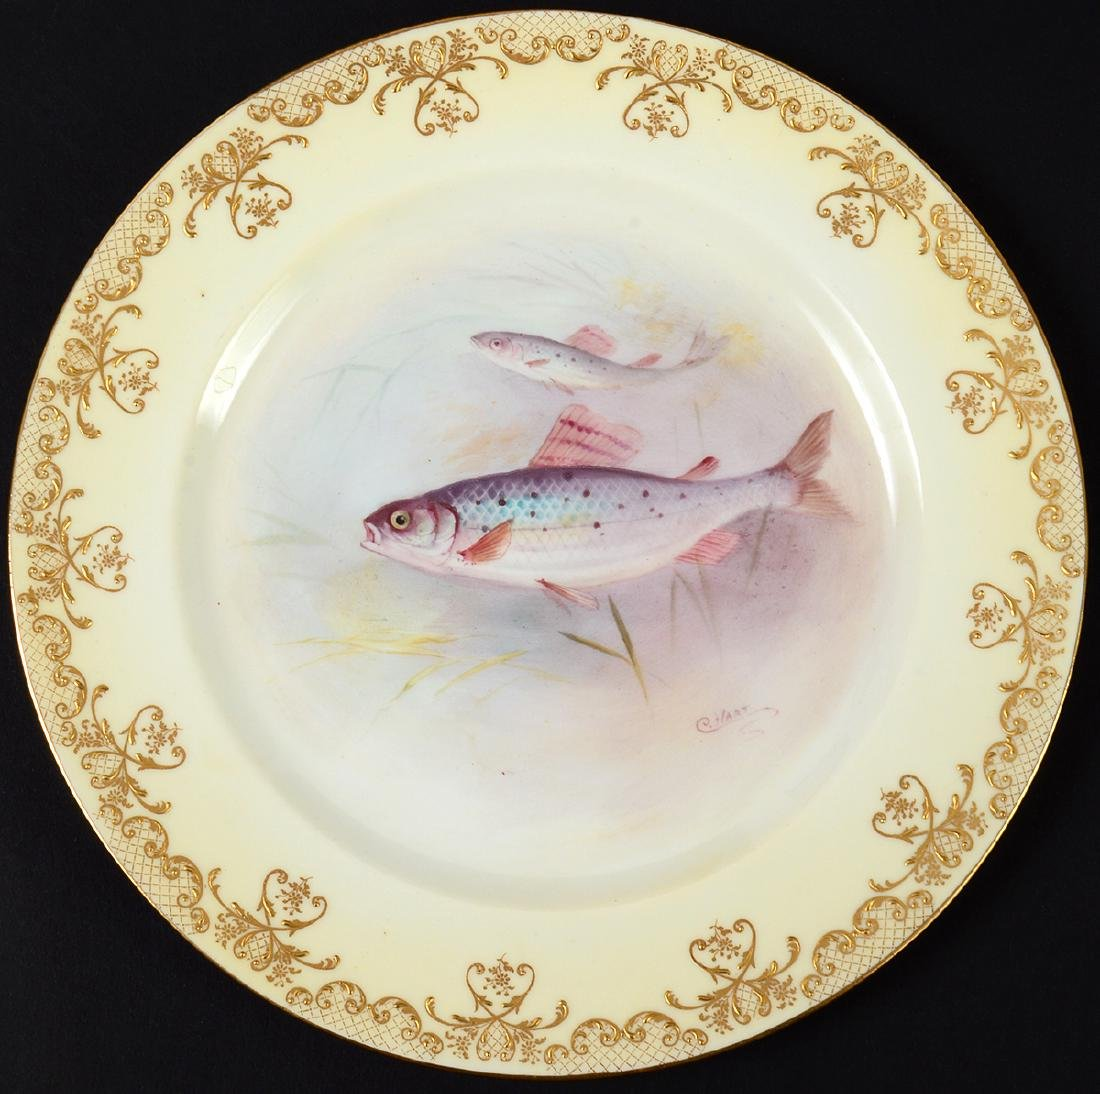 SET OF TEN ROYAL DOULTON PORCELAIN FISH PLATES - 11